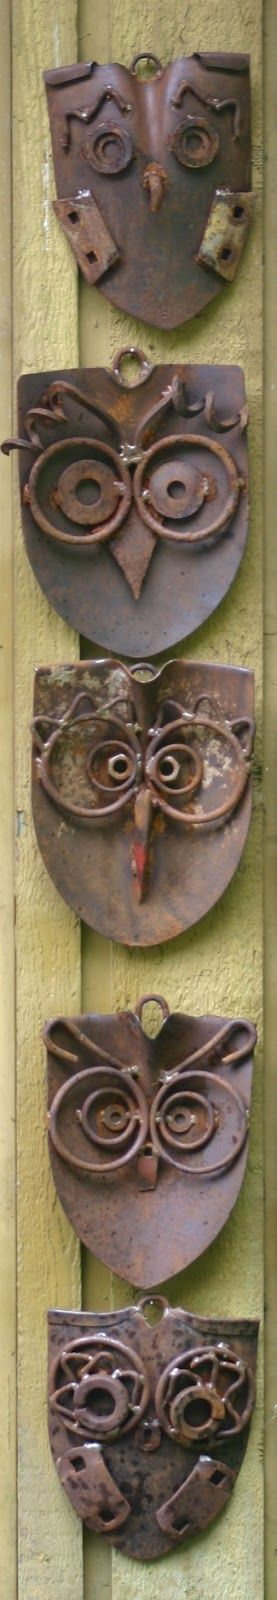 A parliament of junk art owls by Kathysgardengart #gardenart #recycled #metal #owls